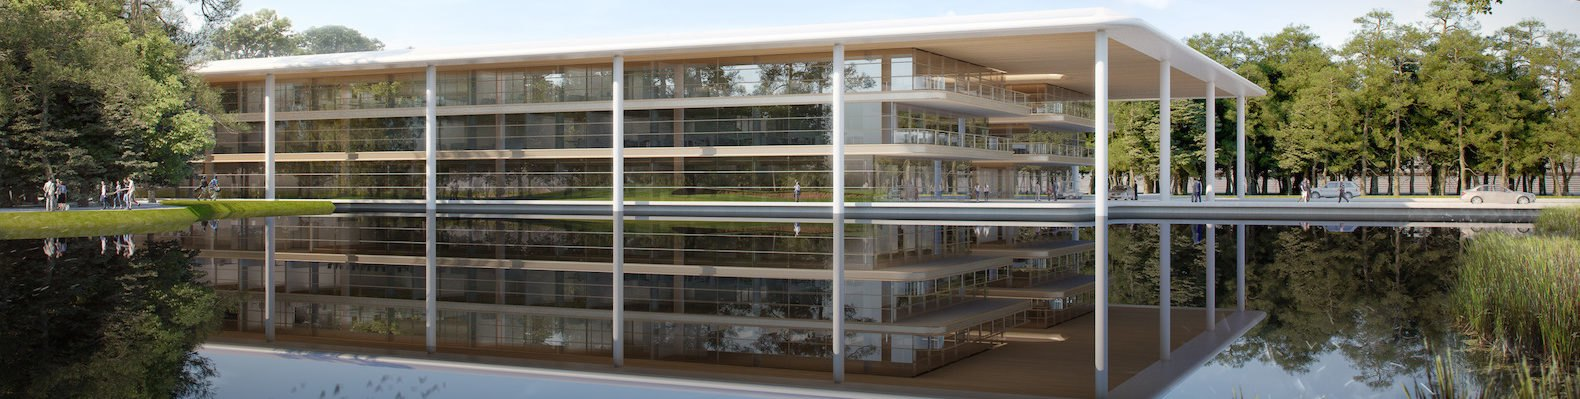 PGA TOUR headquarters by Foster + Partners, PGA TOUR headquarters, PGA TOUR global home, PGA TOUR Ponte Vedra Beach, LEED Gold PGA TOUR HQ, biophilic headquarter design, biophilic in LEED architecture, Foster + Partners LEED architecture